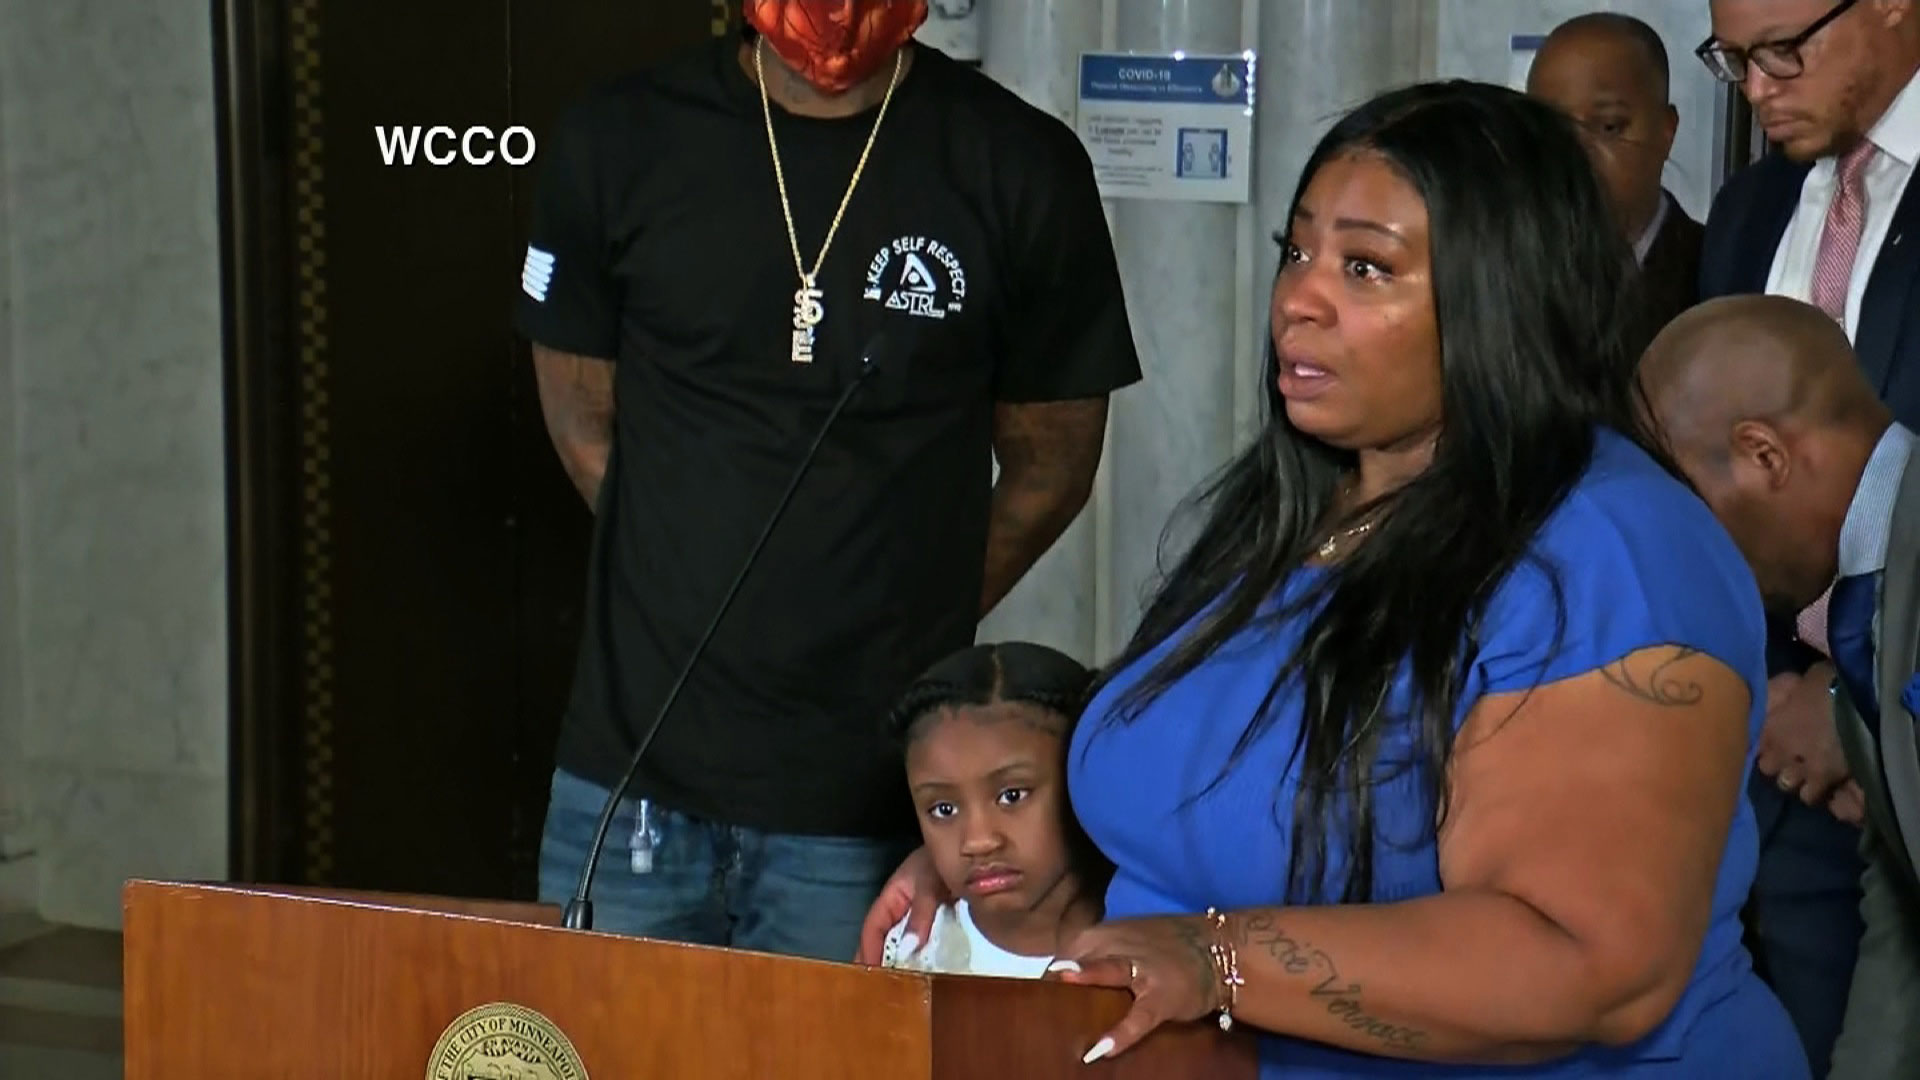 Mother of George Floyd's daughter says she wants justice for him